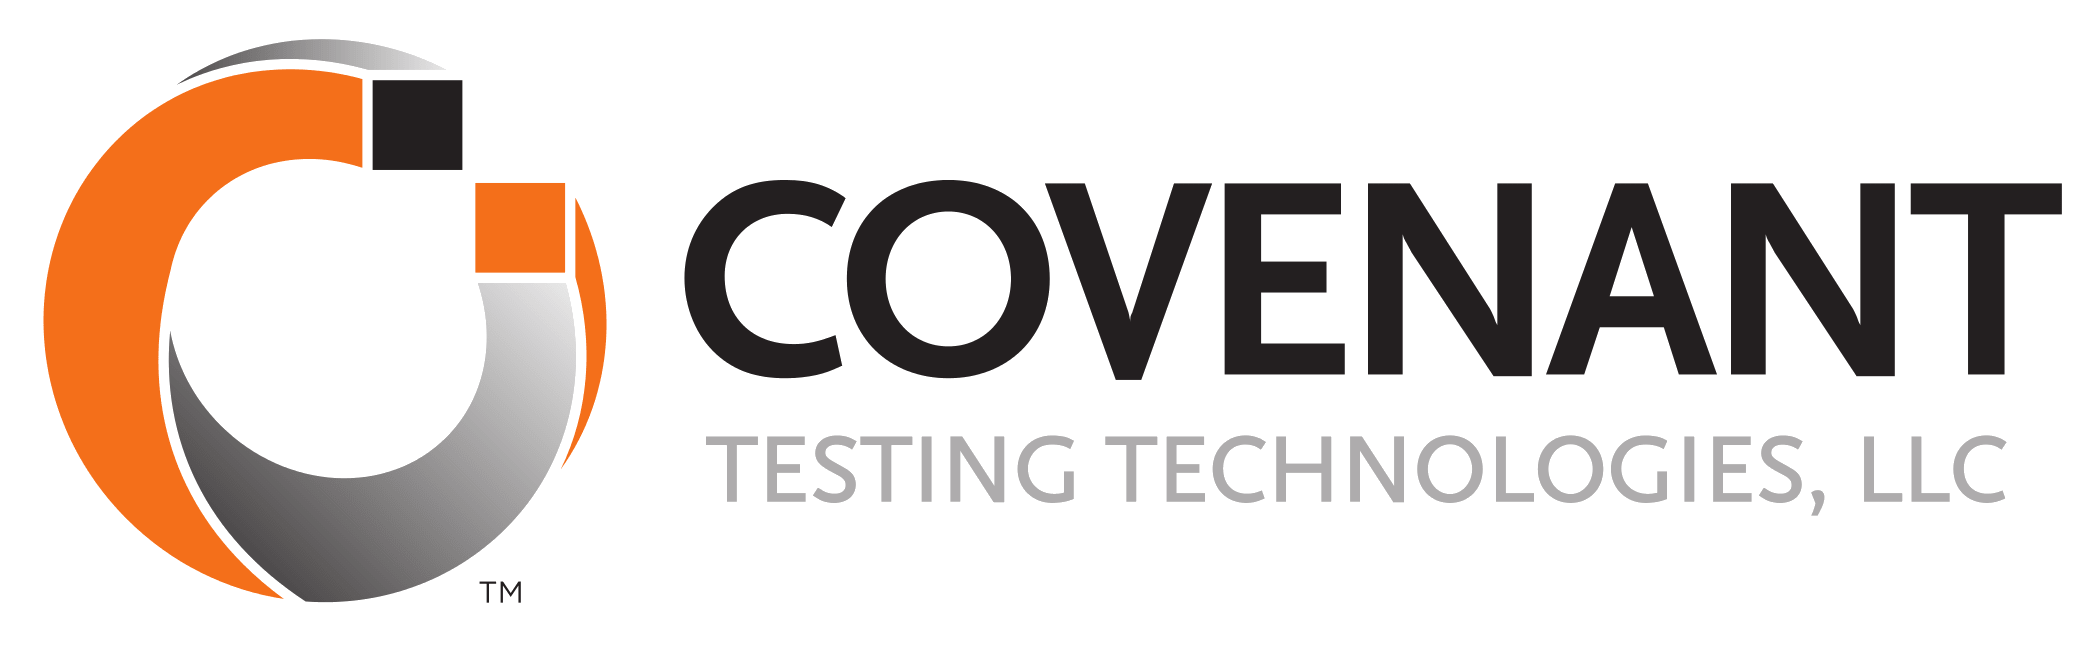 Covenant Testing Technologies, LLC